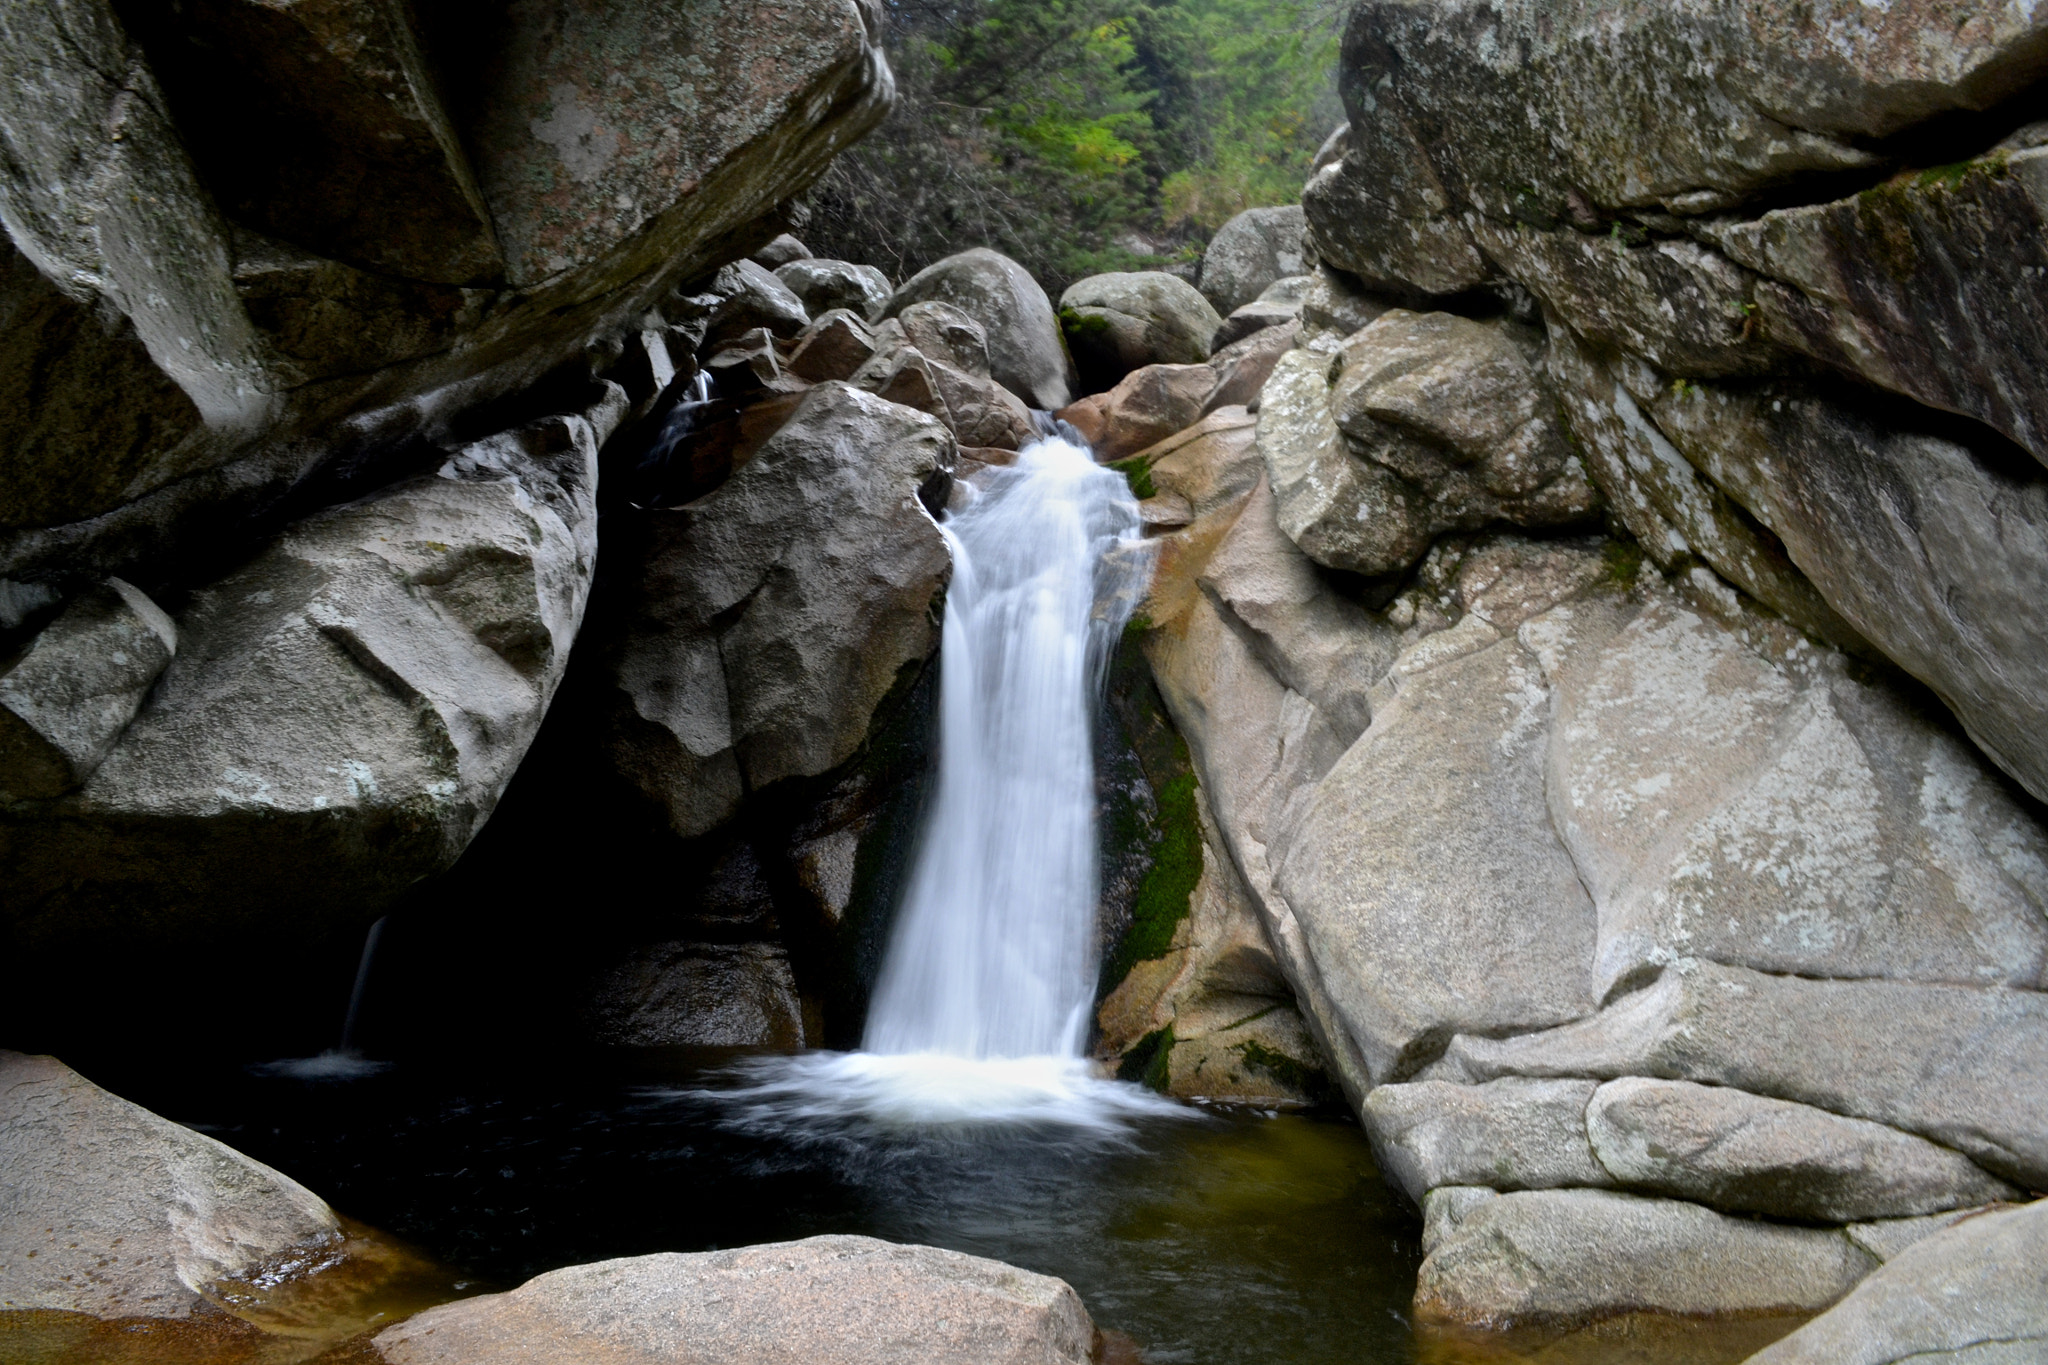 Photograph That small fall by Jose  Ferreyra on 500px